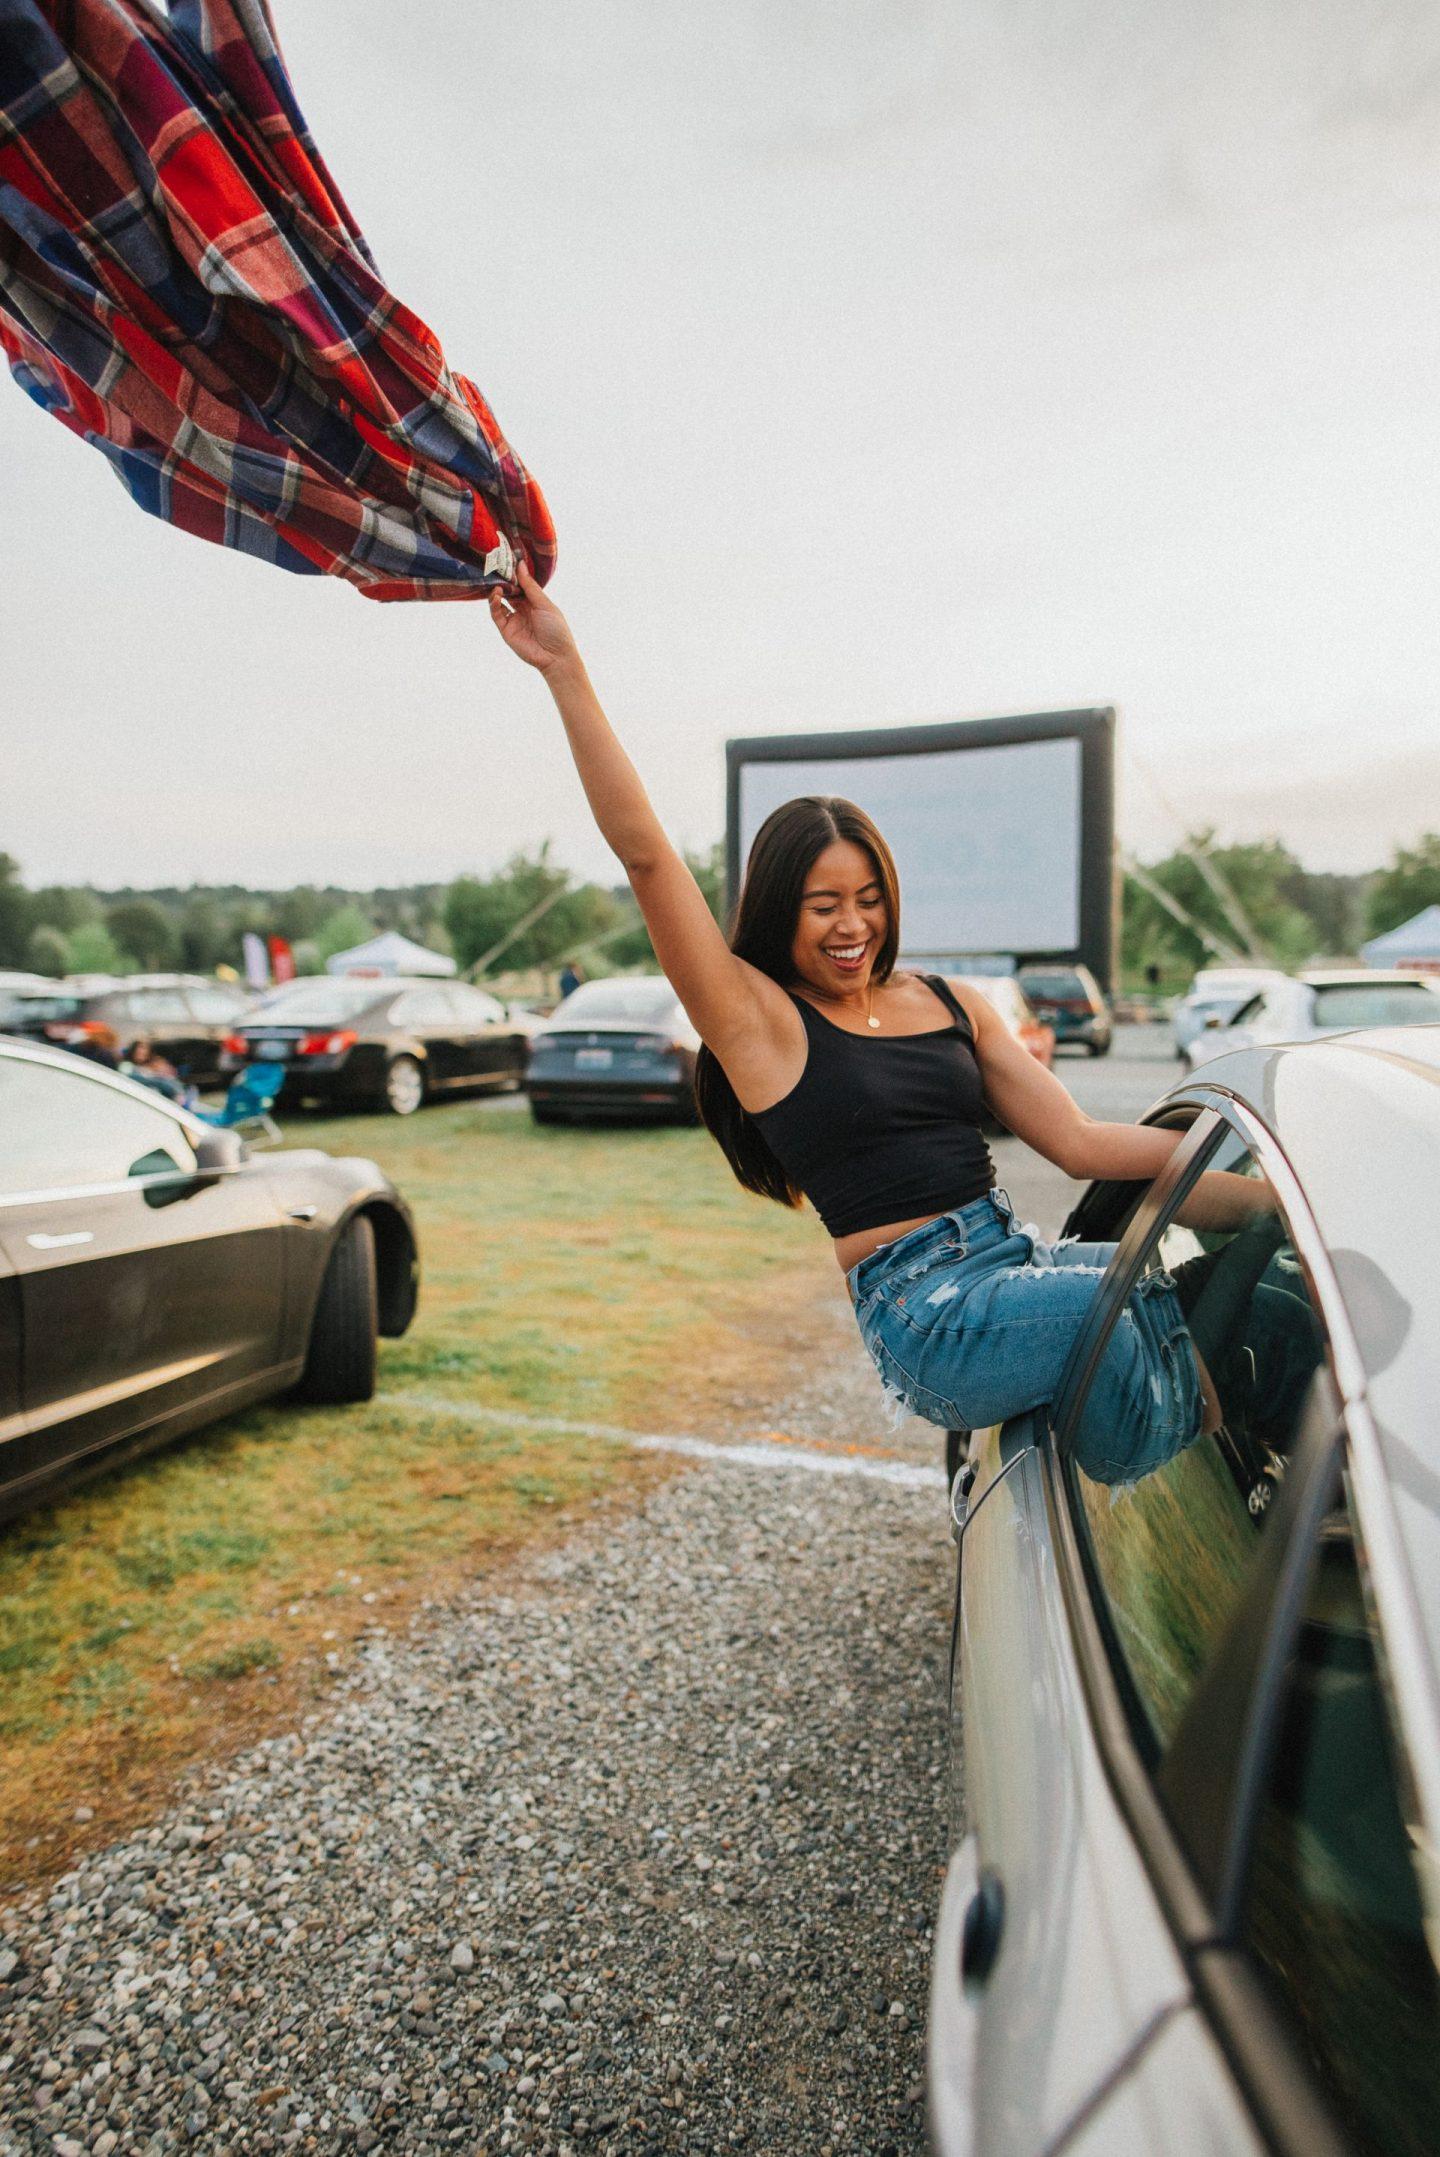 summer activities with your BFF - best friend photo shoot ideas - summer photo shoots - drive-in movie theater - image copyright @emmasedition - www.emmasedition.com